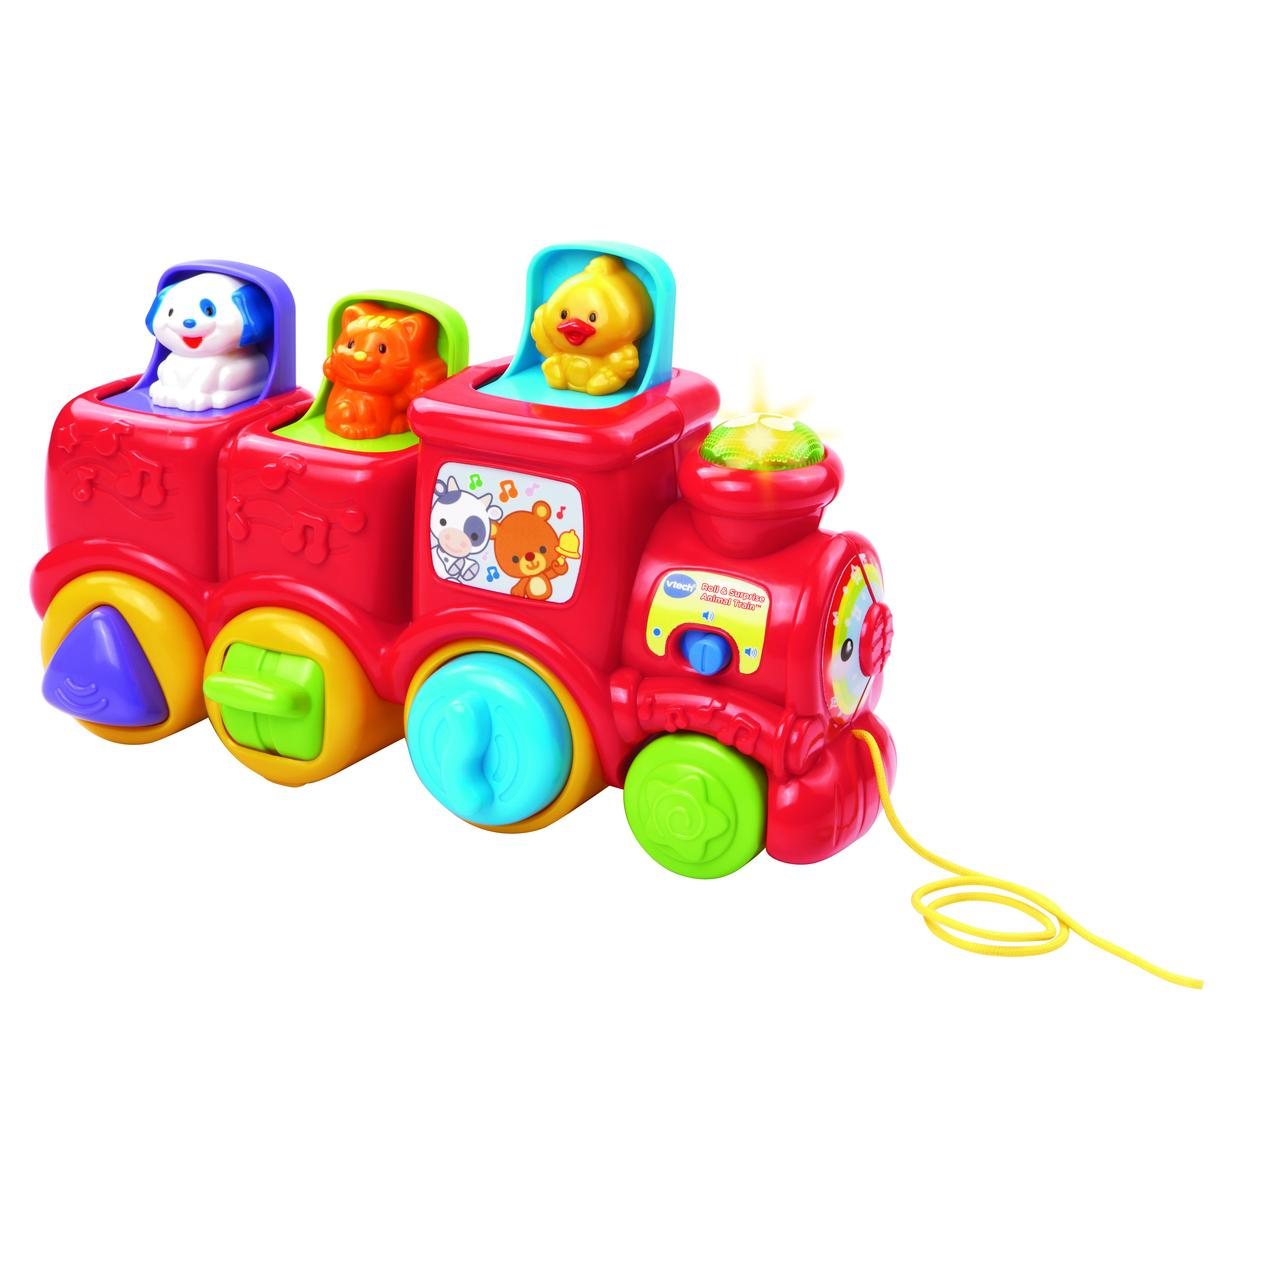 Roll & Surprise Animal Train by VTech